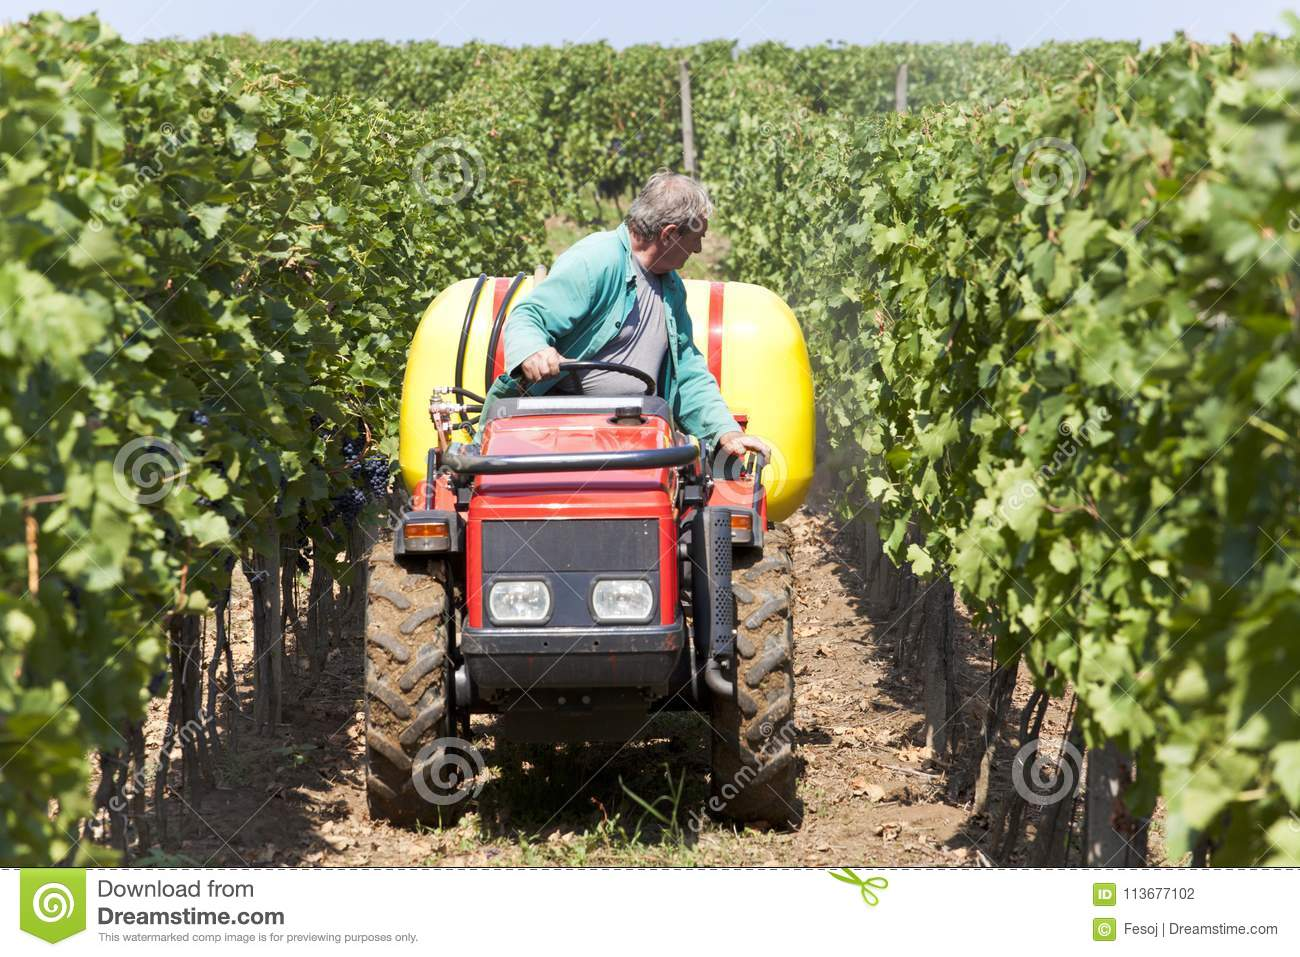 Small Agriculture Machinery Sprayer In Action In Vineyard Stock